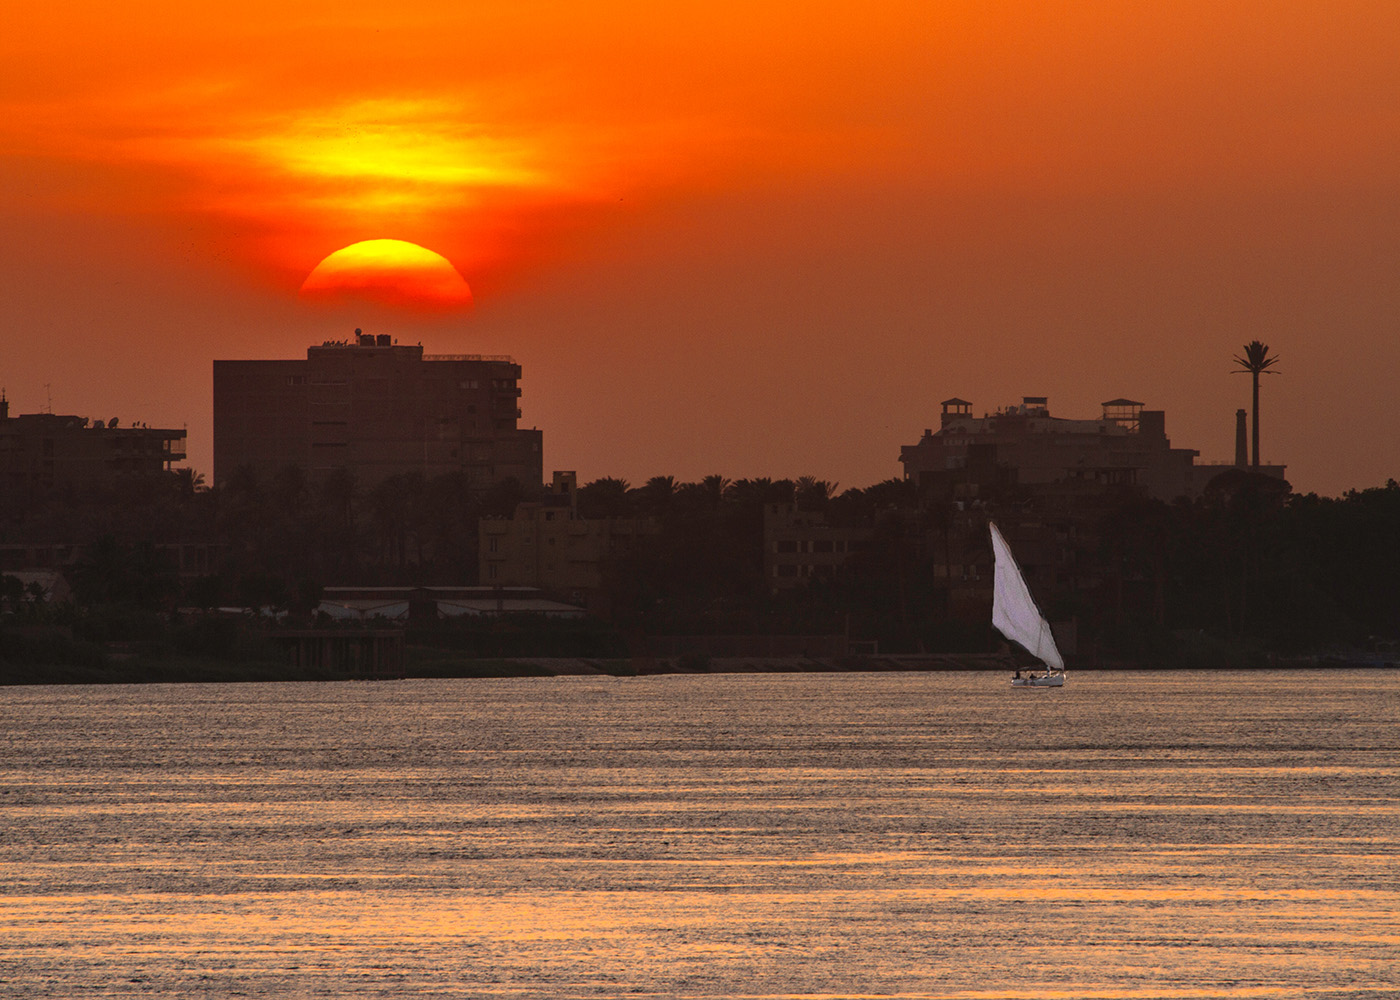 Sunset Across the Nile